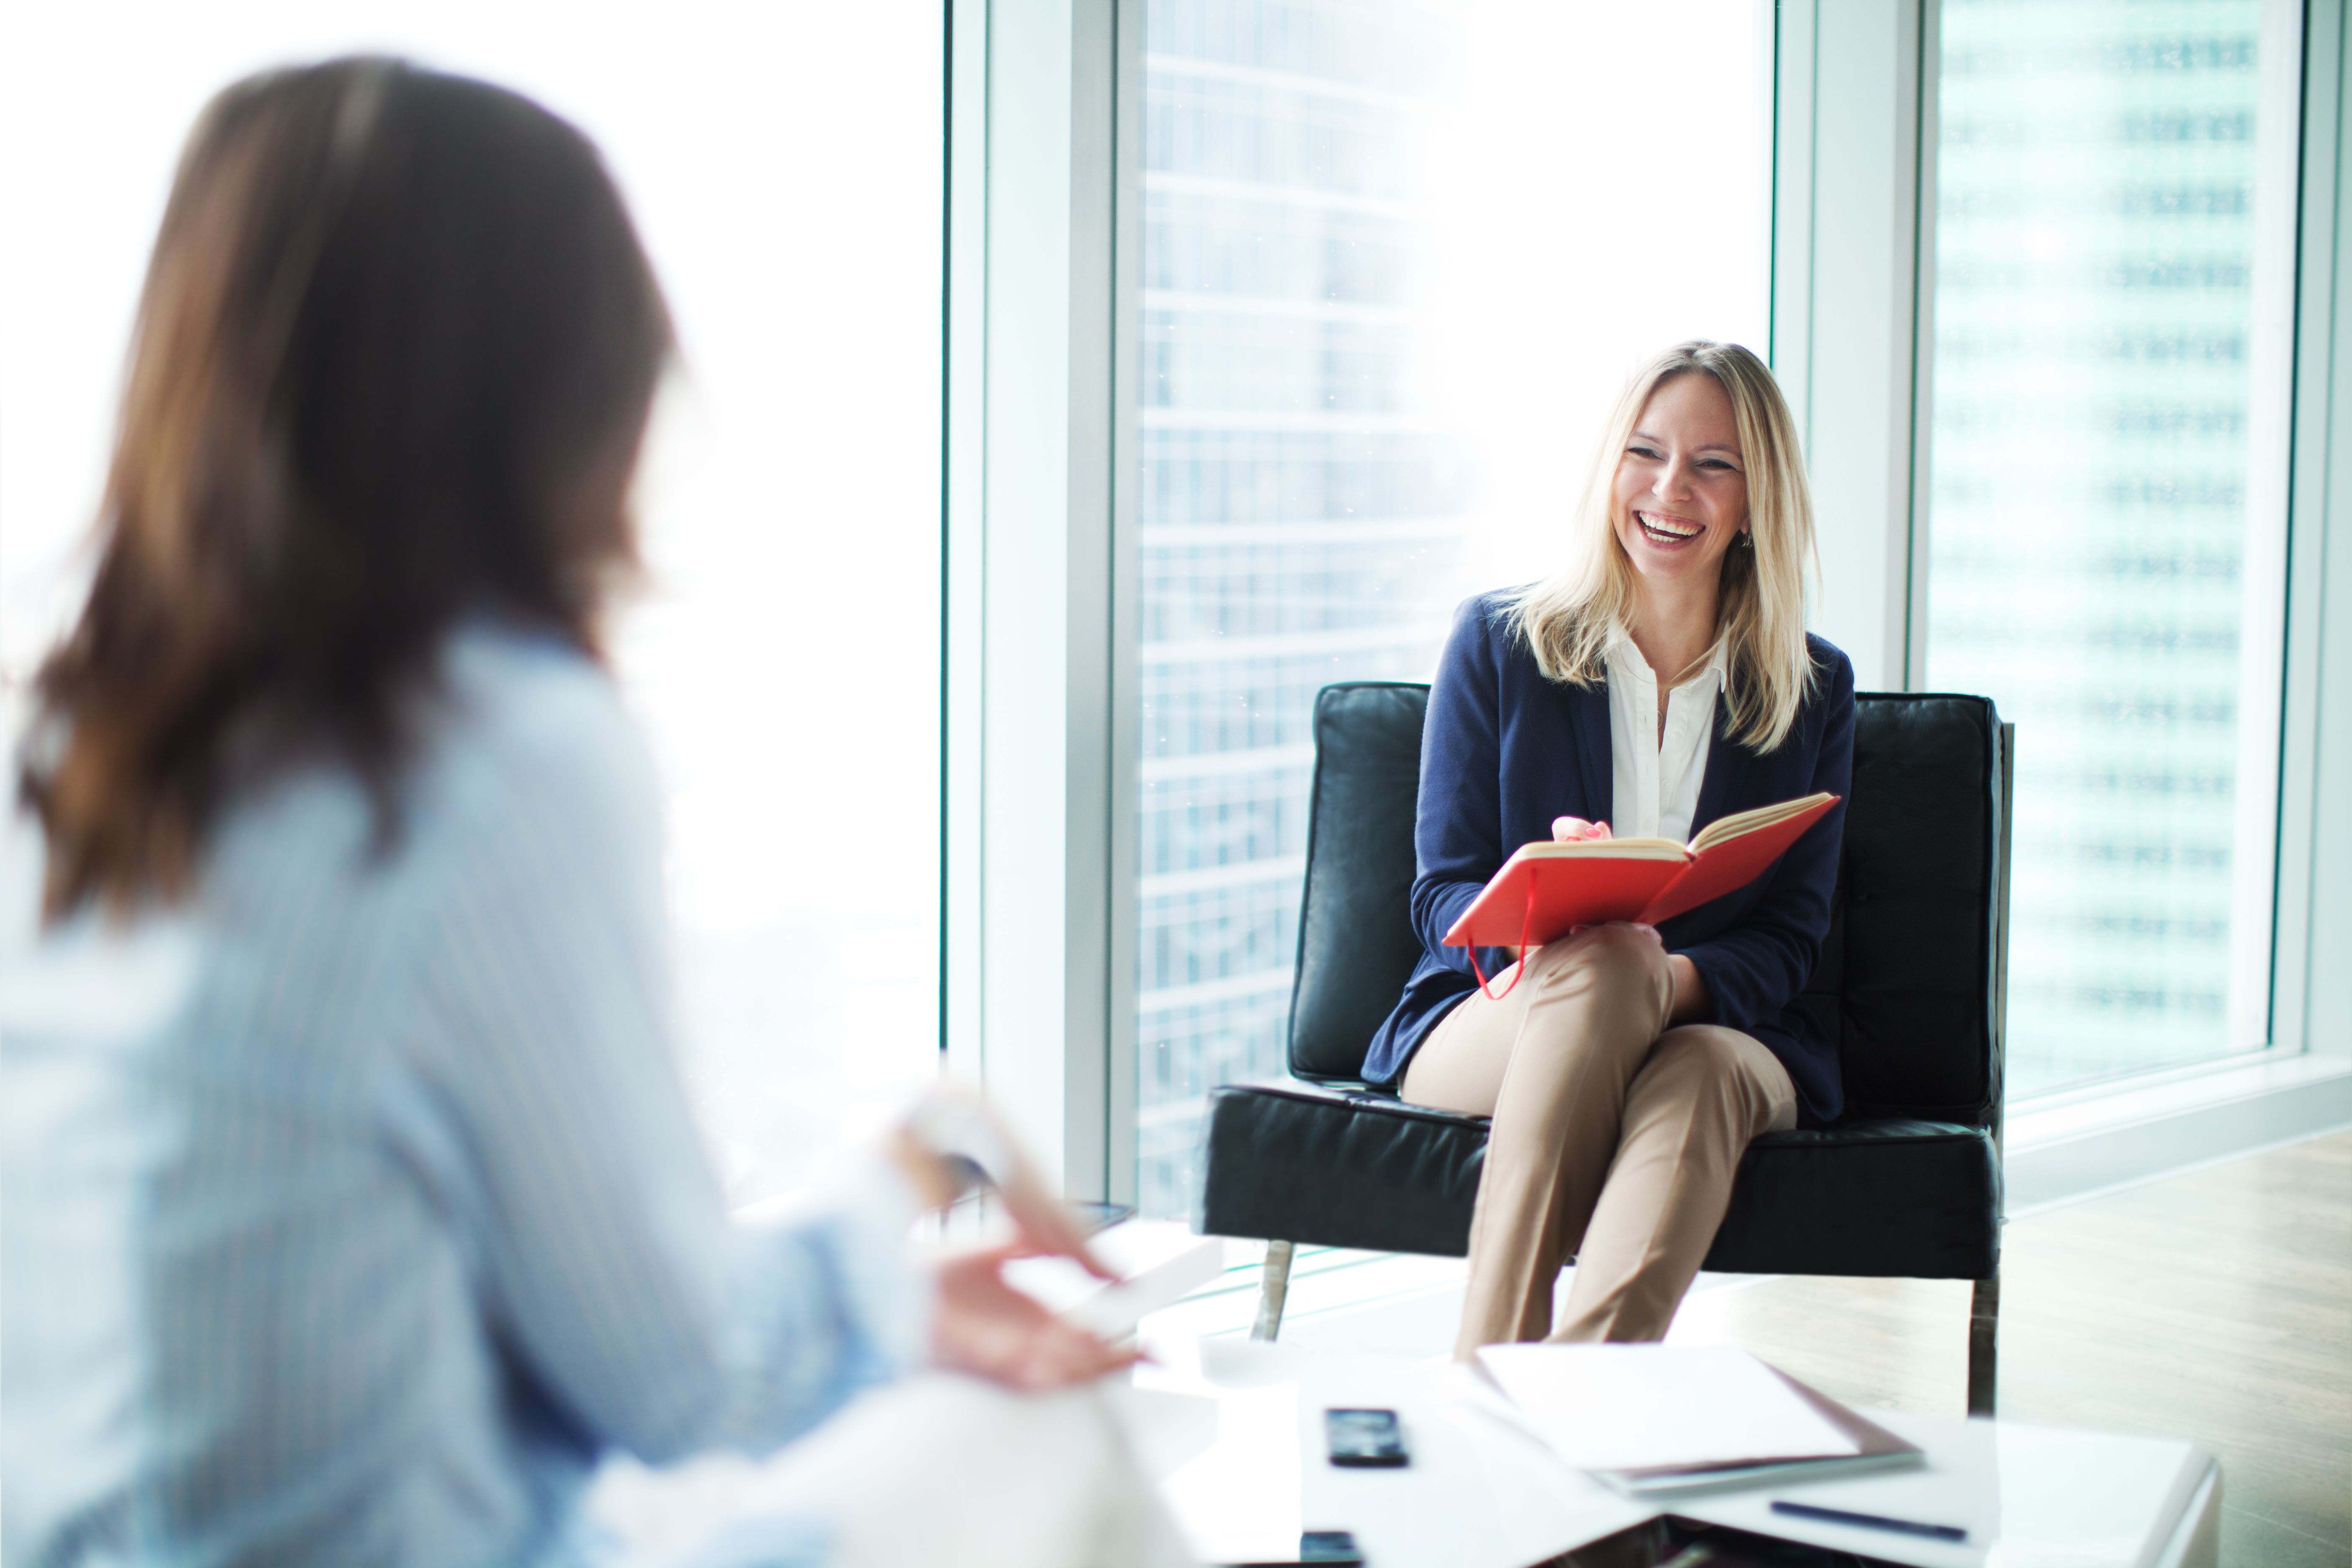 interview question new 1 Below we've listed some of the most common interview questions, so you can   adam is in the top 1% most viewed profiles on linkedin and ceo of the highly   show how you can bring what you learned to the new role.